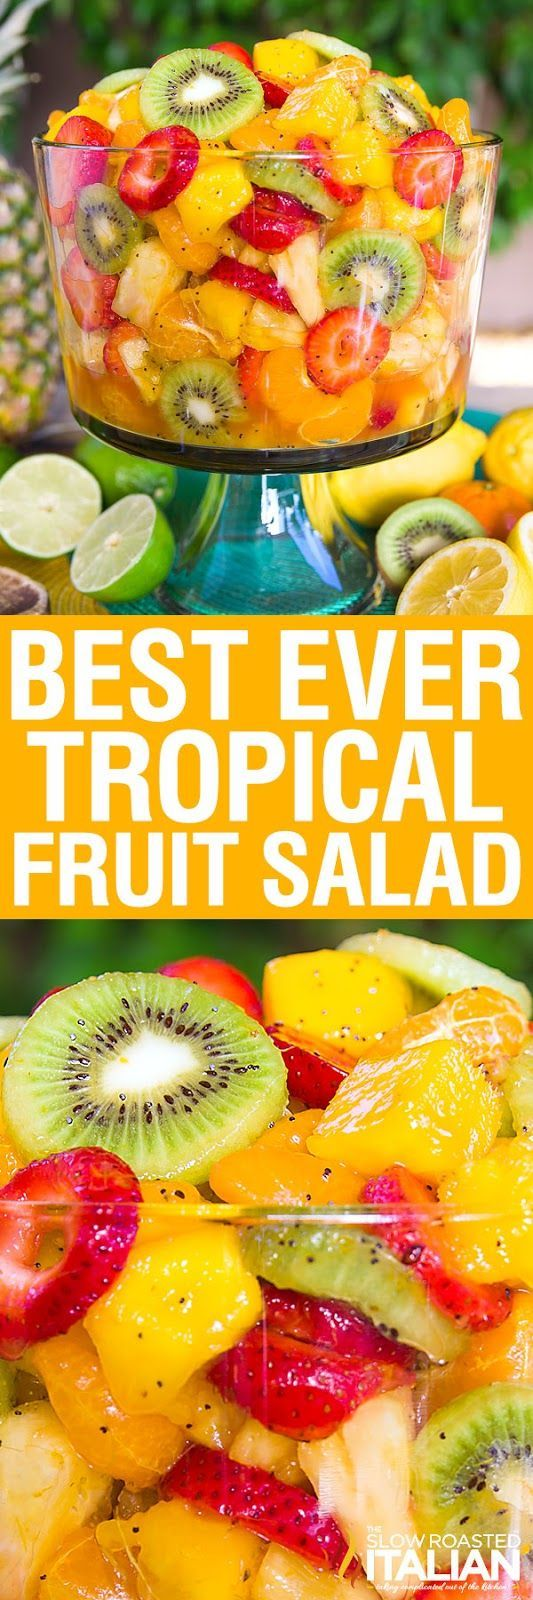 The Best Ever Tropical Fruit Salad is the only recipe you'll ever need. My entire picky family devoured this fruit salad. The dressing is truly magical. The combination of citrus juices with honey are phenomenal. Then we added a few special ingredients th